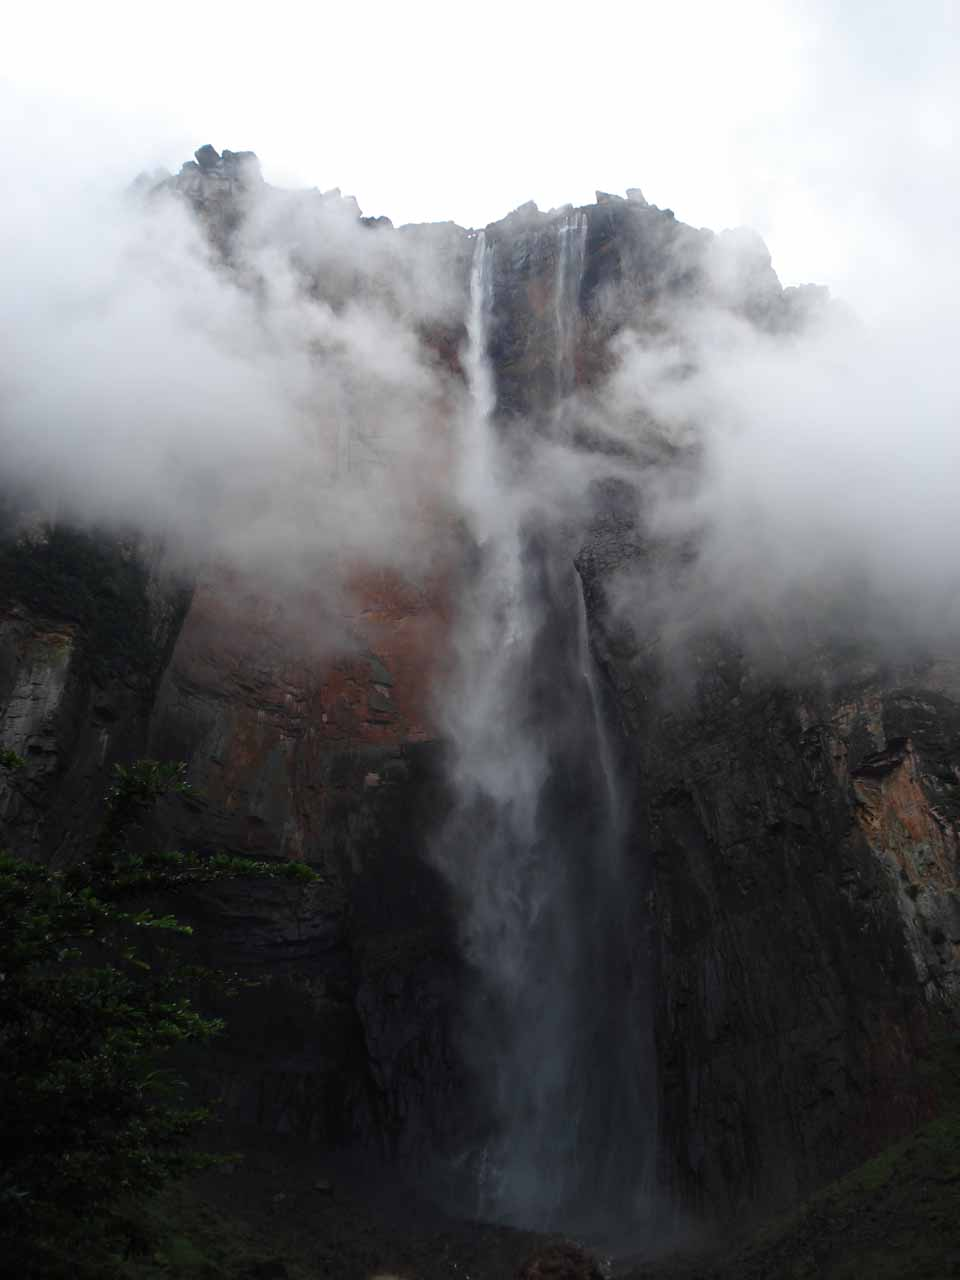 View of Angel Falls from Mirador Laime in light to average flow